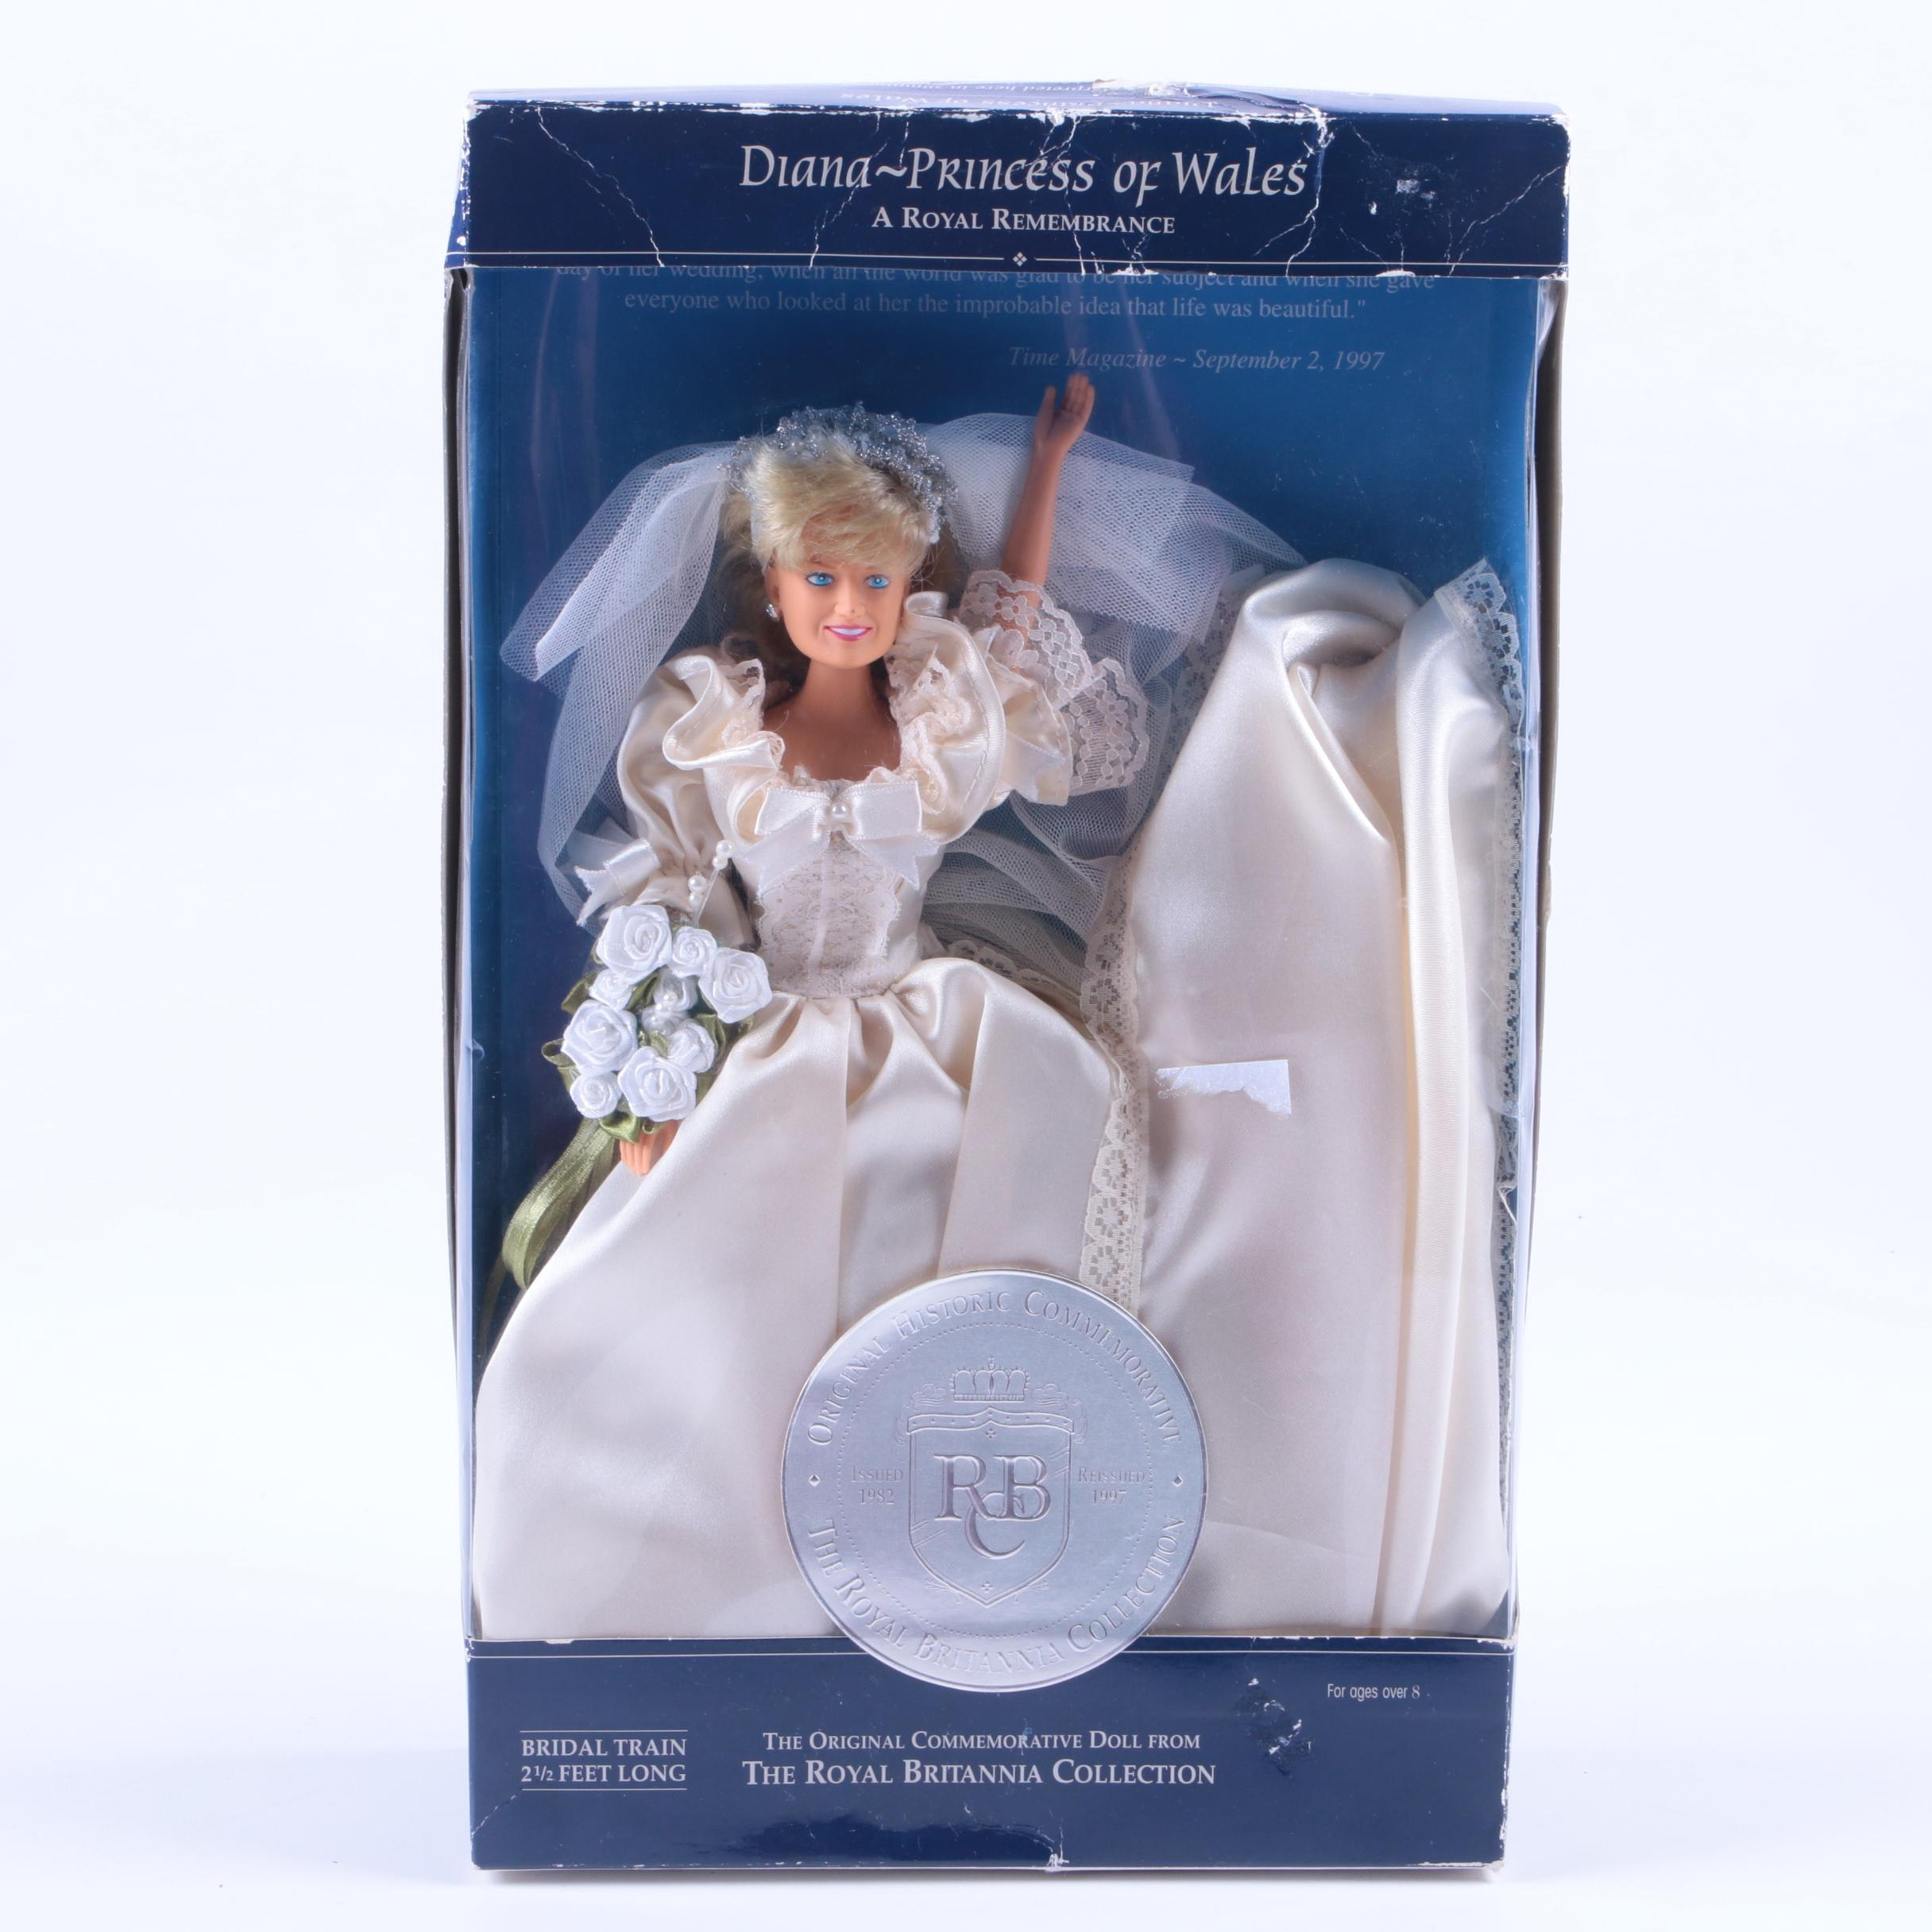 Diana, Princess of Wales Royal Remembrance Doll